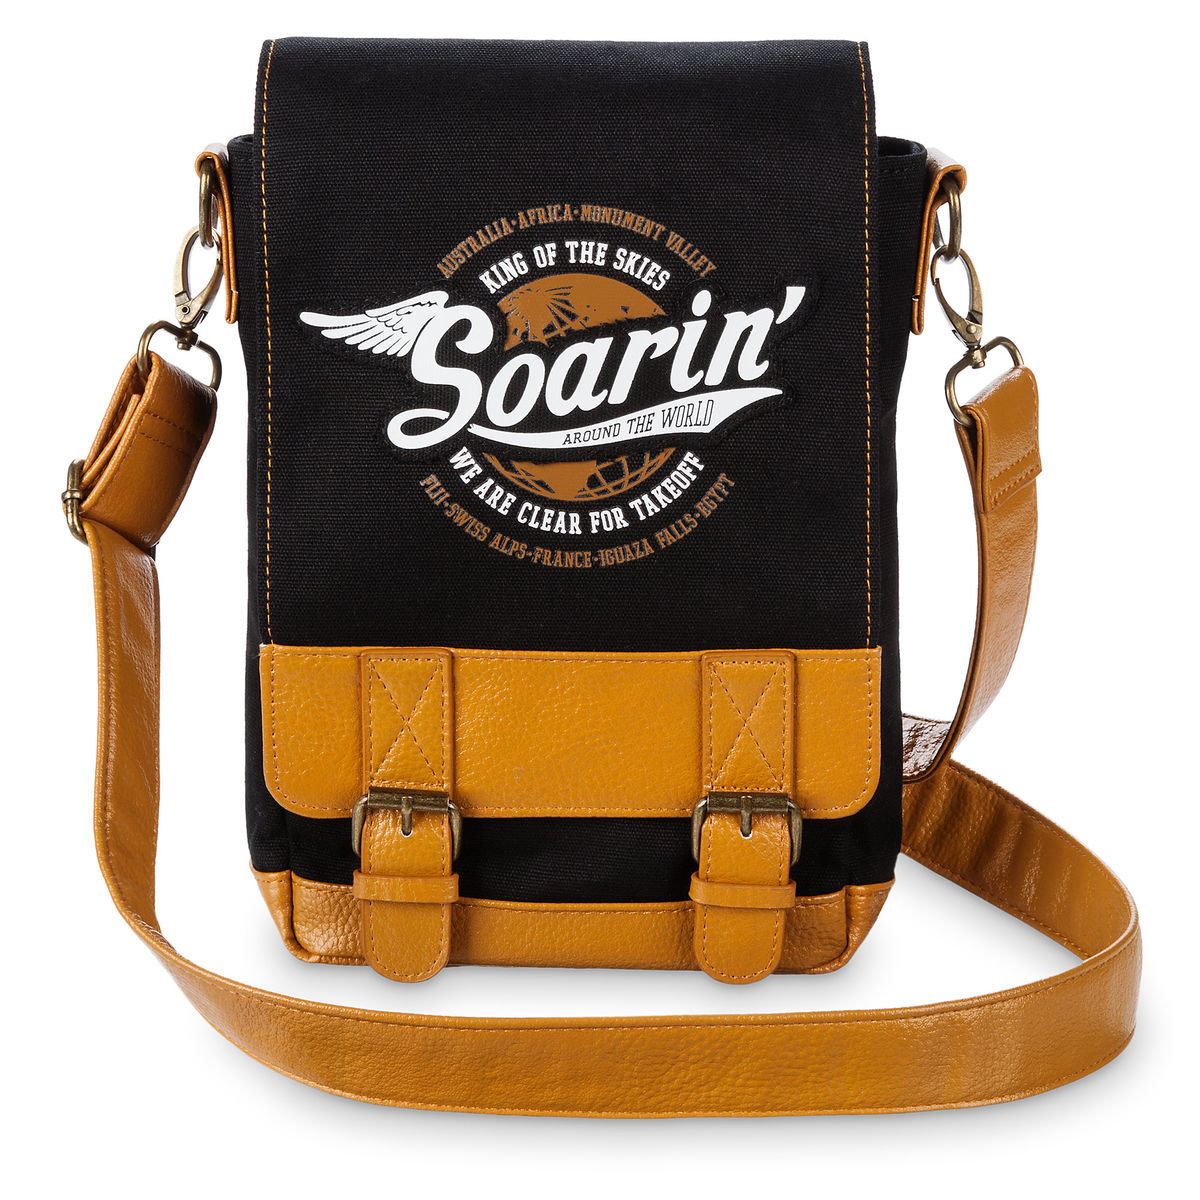 Disney Messenger Bag - Soarin' Around the World